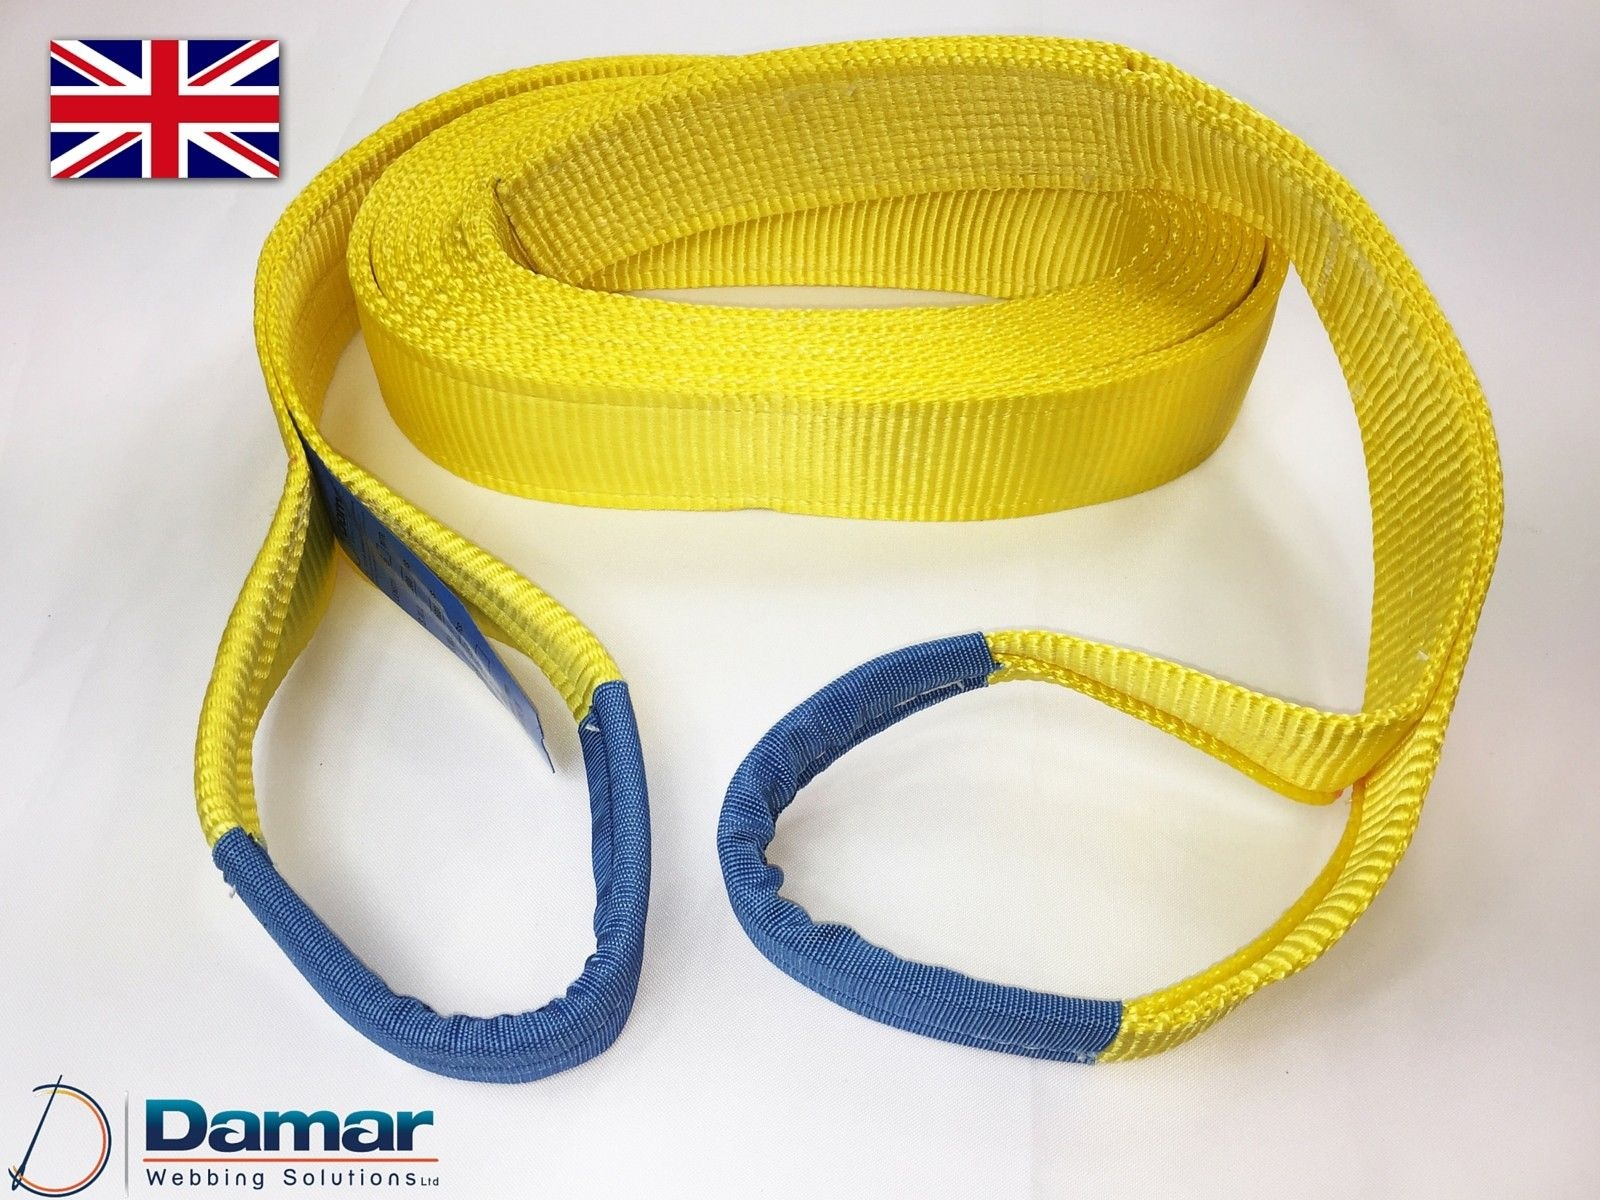 2t 3Mtr Lifting Slings 4x4 Tow rope